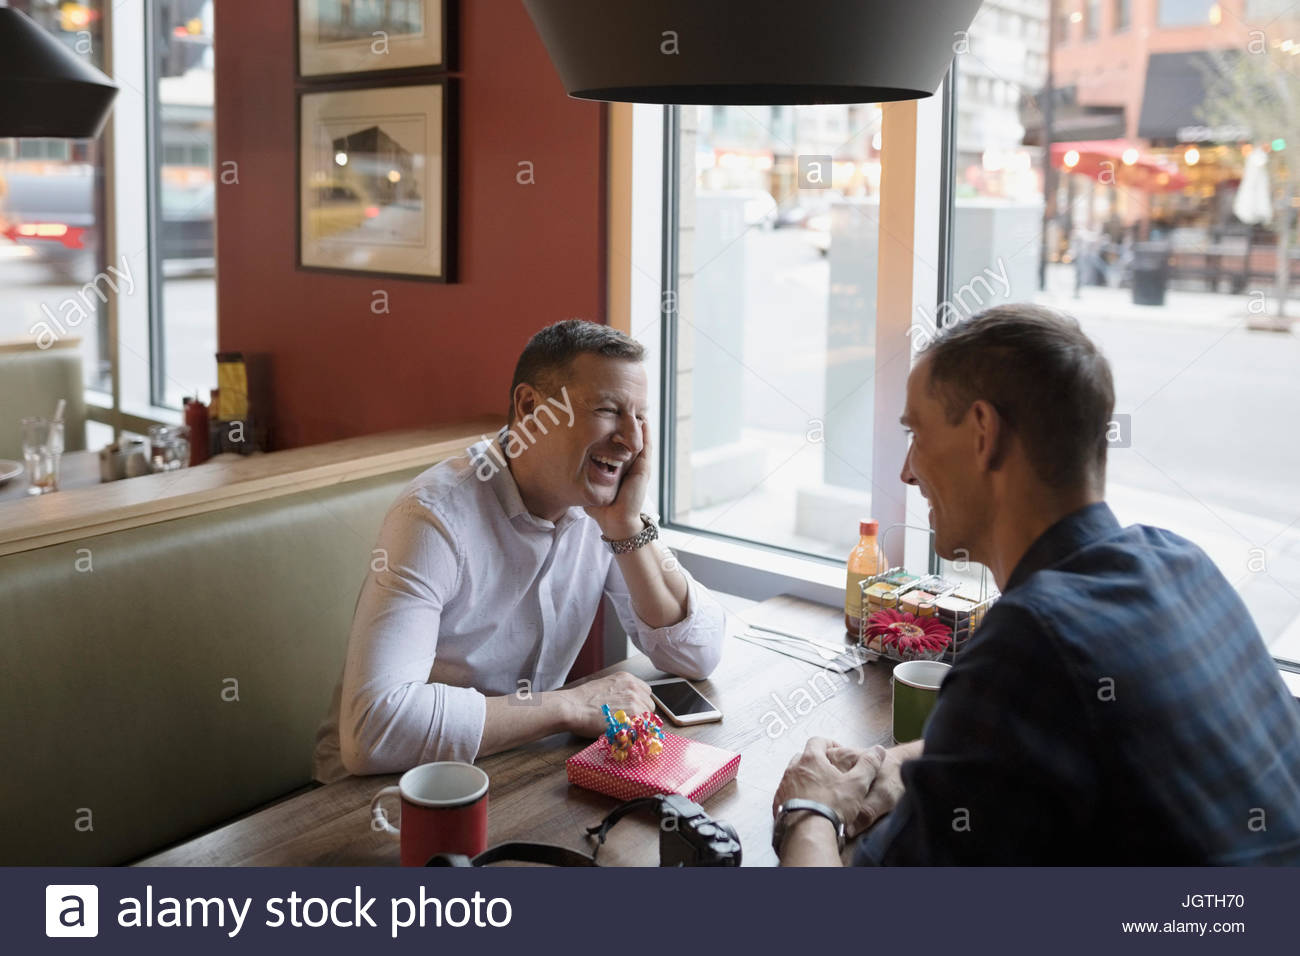 Smiling male gay couple celebrating birthday at diner booth - Stock Image